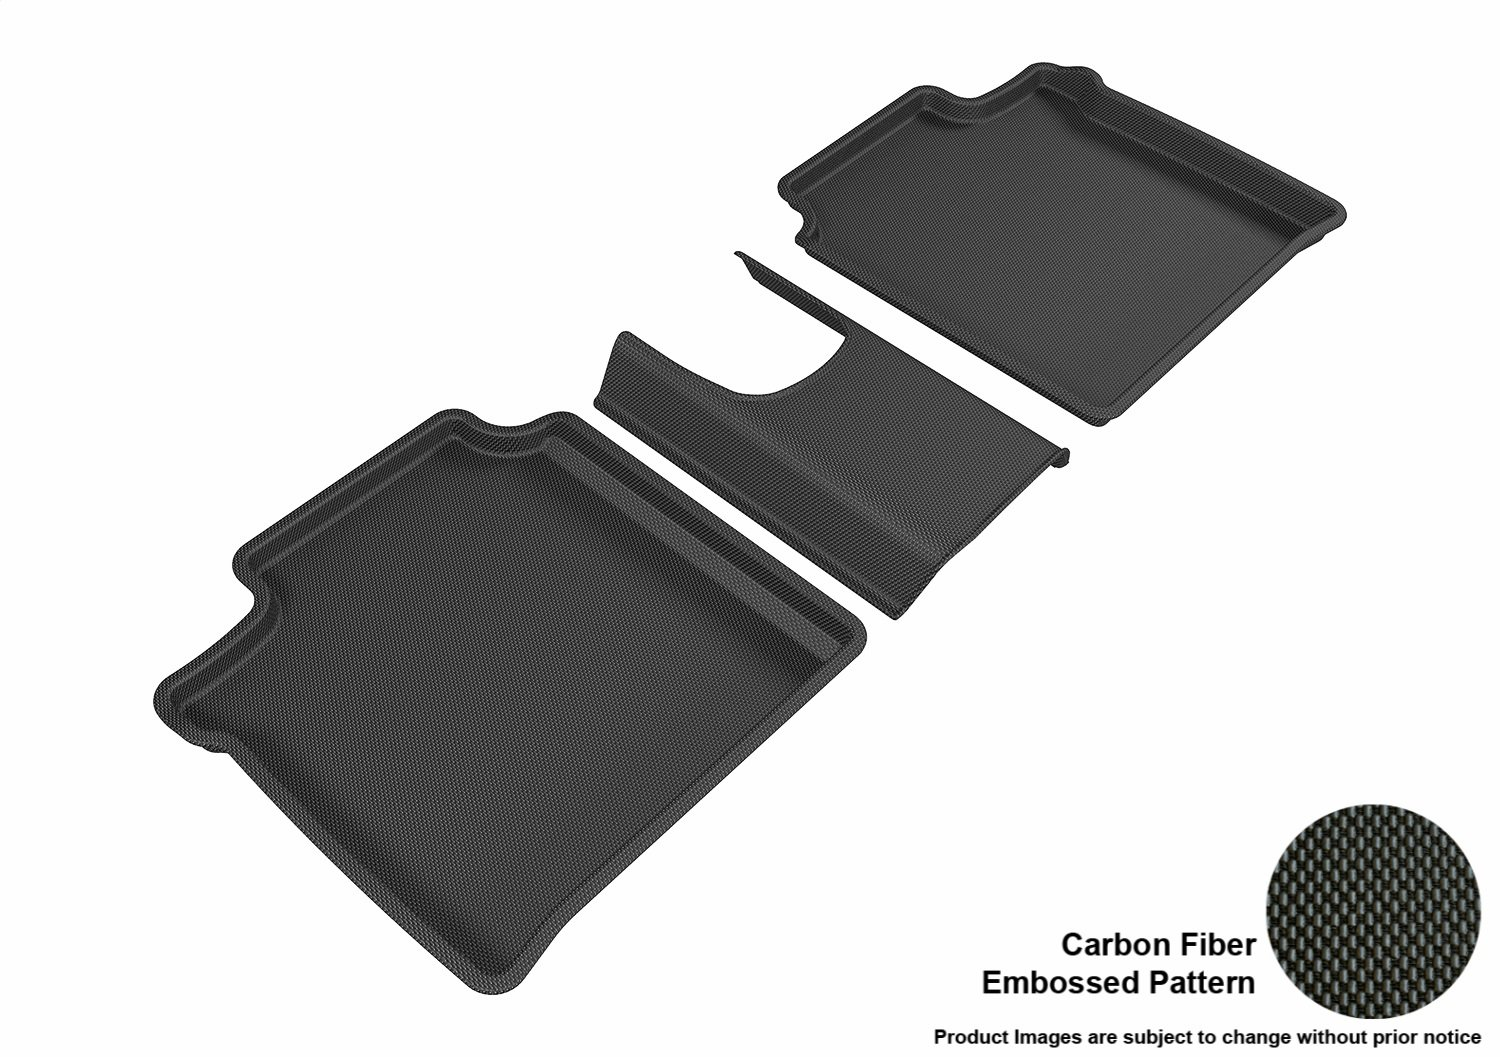 3D MAXpider Front Row Custom Fit All-Weather Floor Mat for Select Nissan Versa Note Models Black Kagu Rubber L1NS08711509